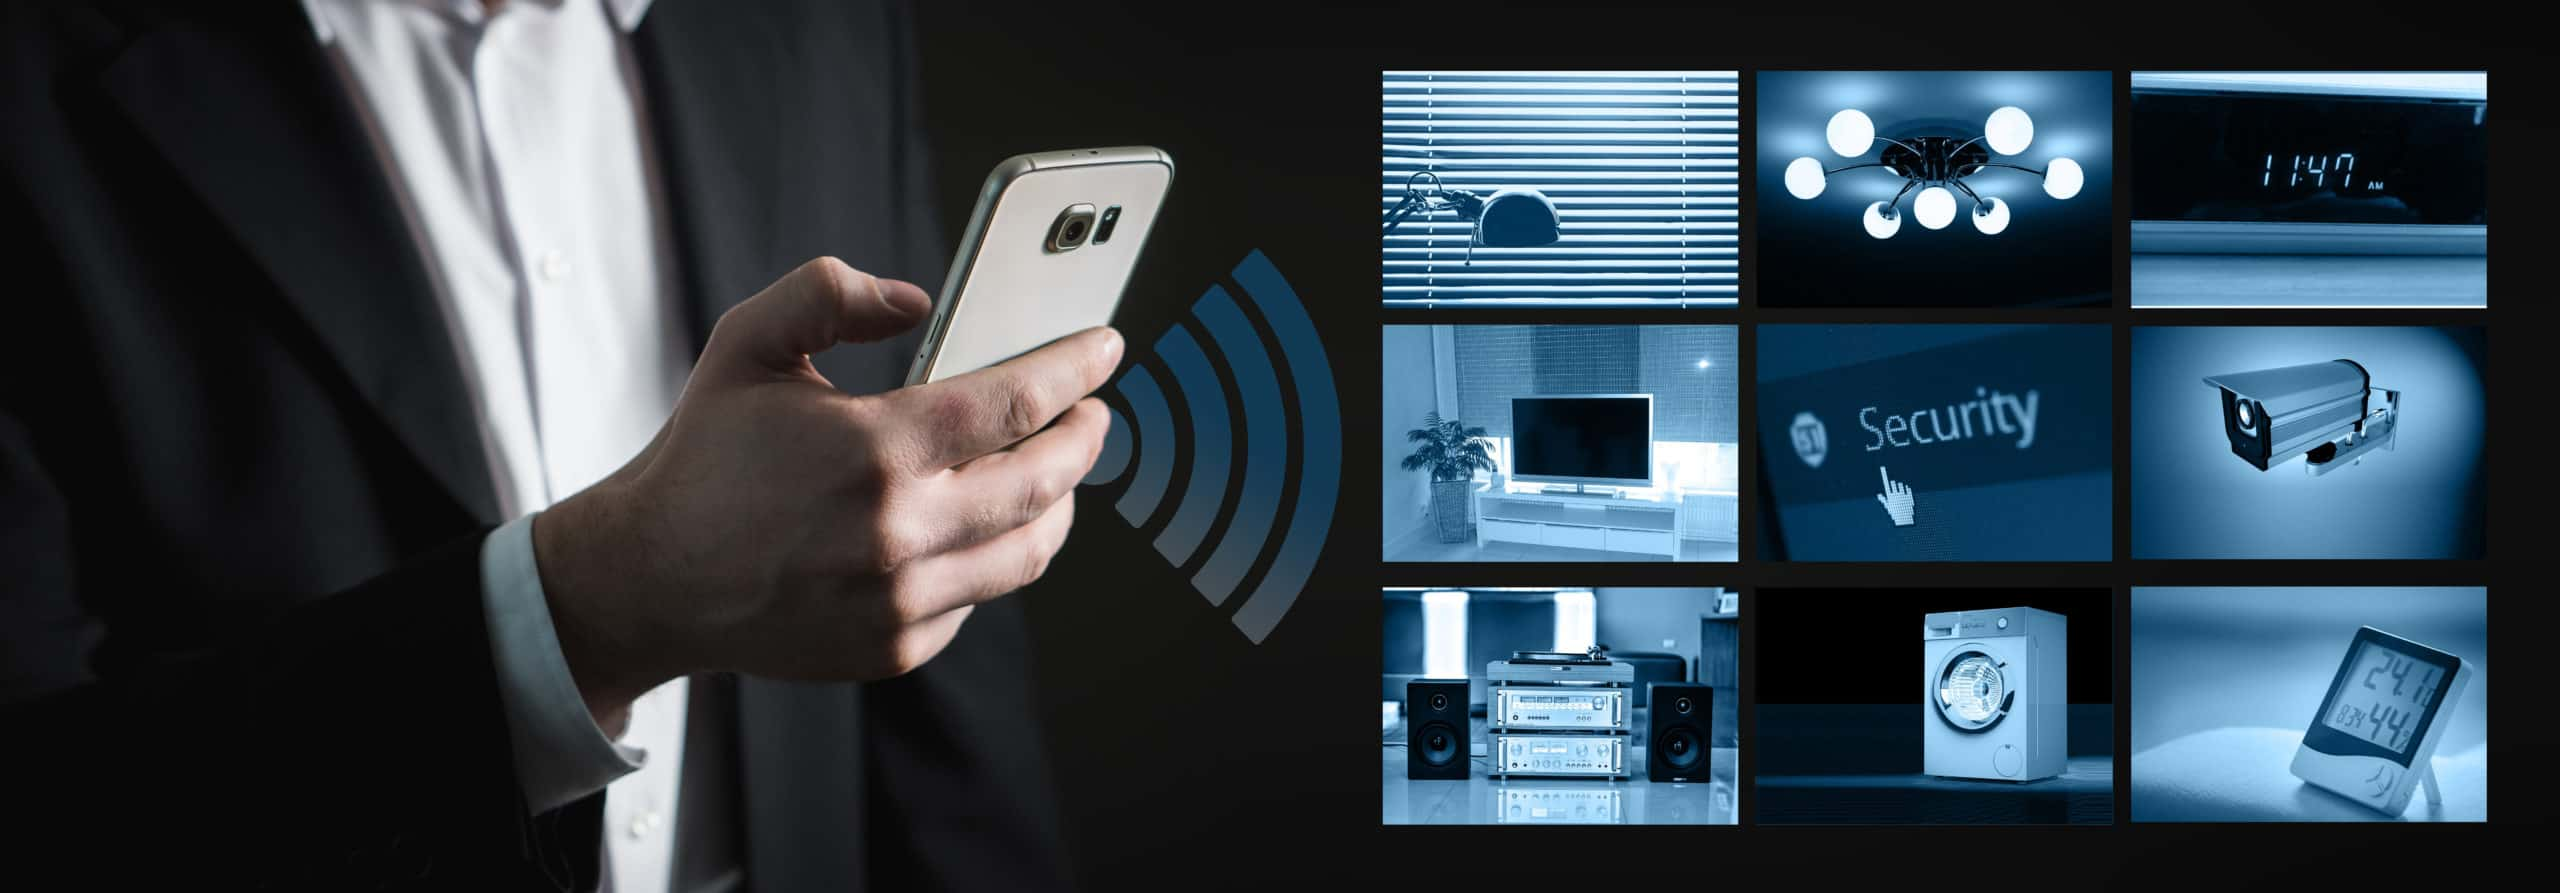 what problems do smart homes solve